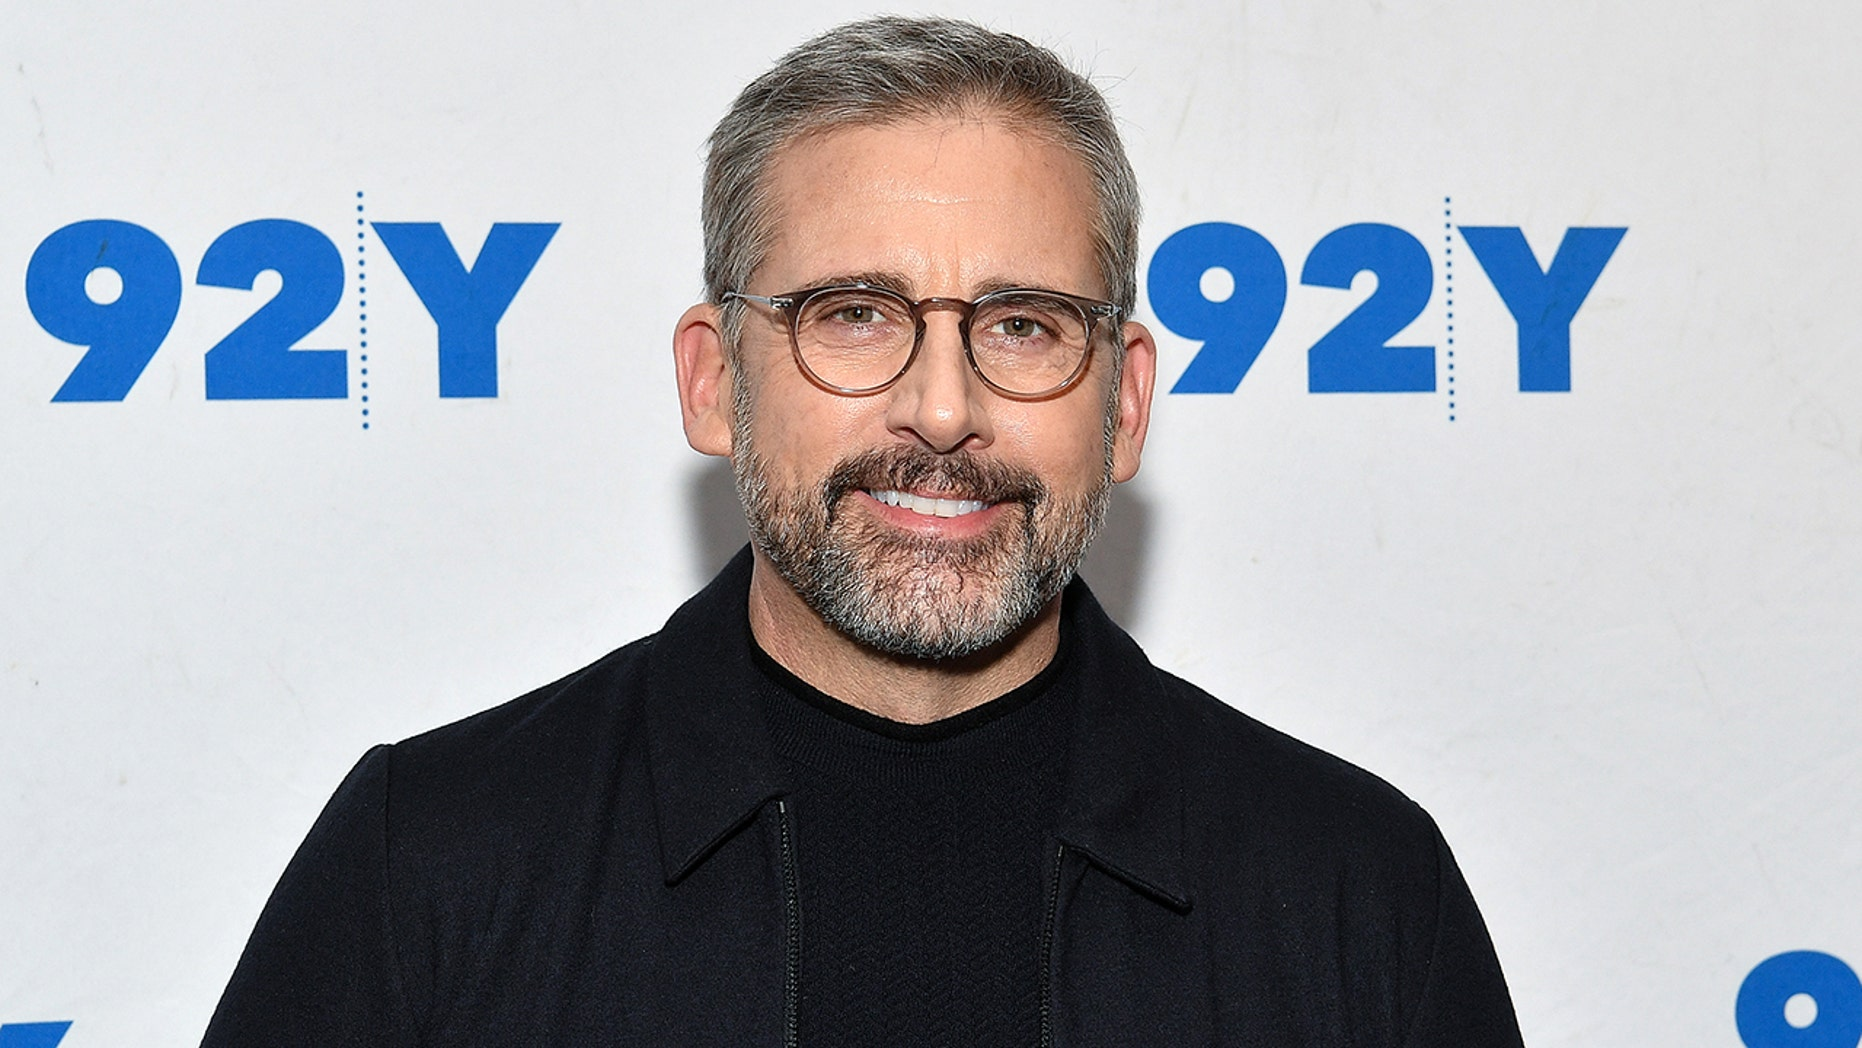 Steve Carell Is Bringing Trump's Space Force to Netflix